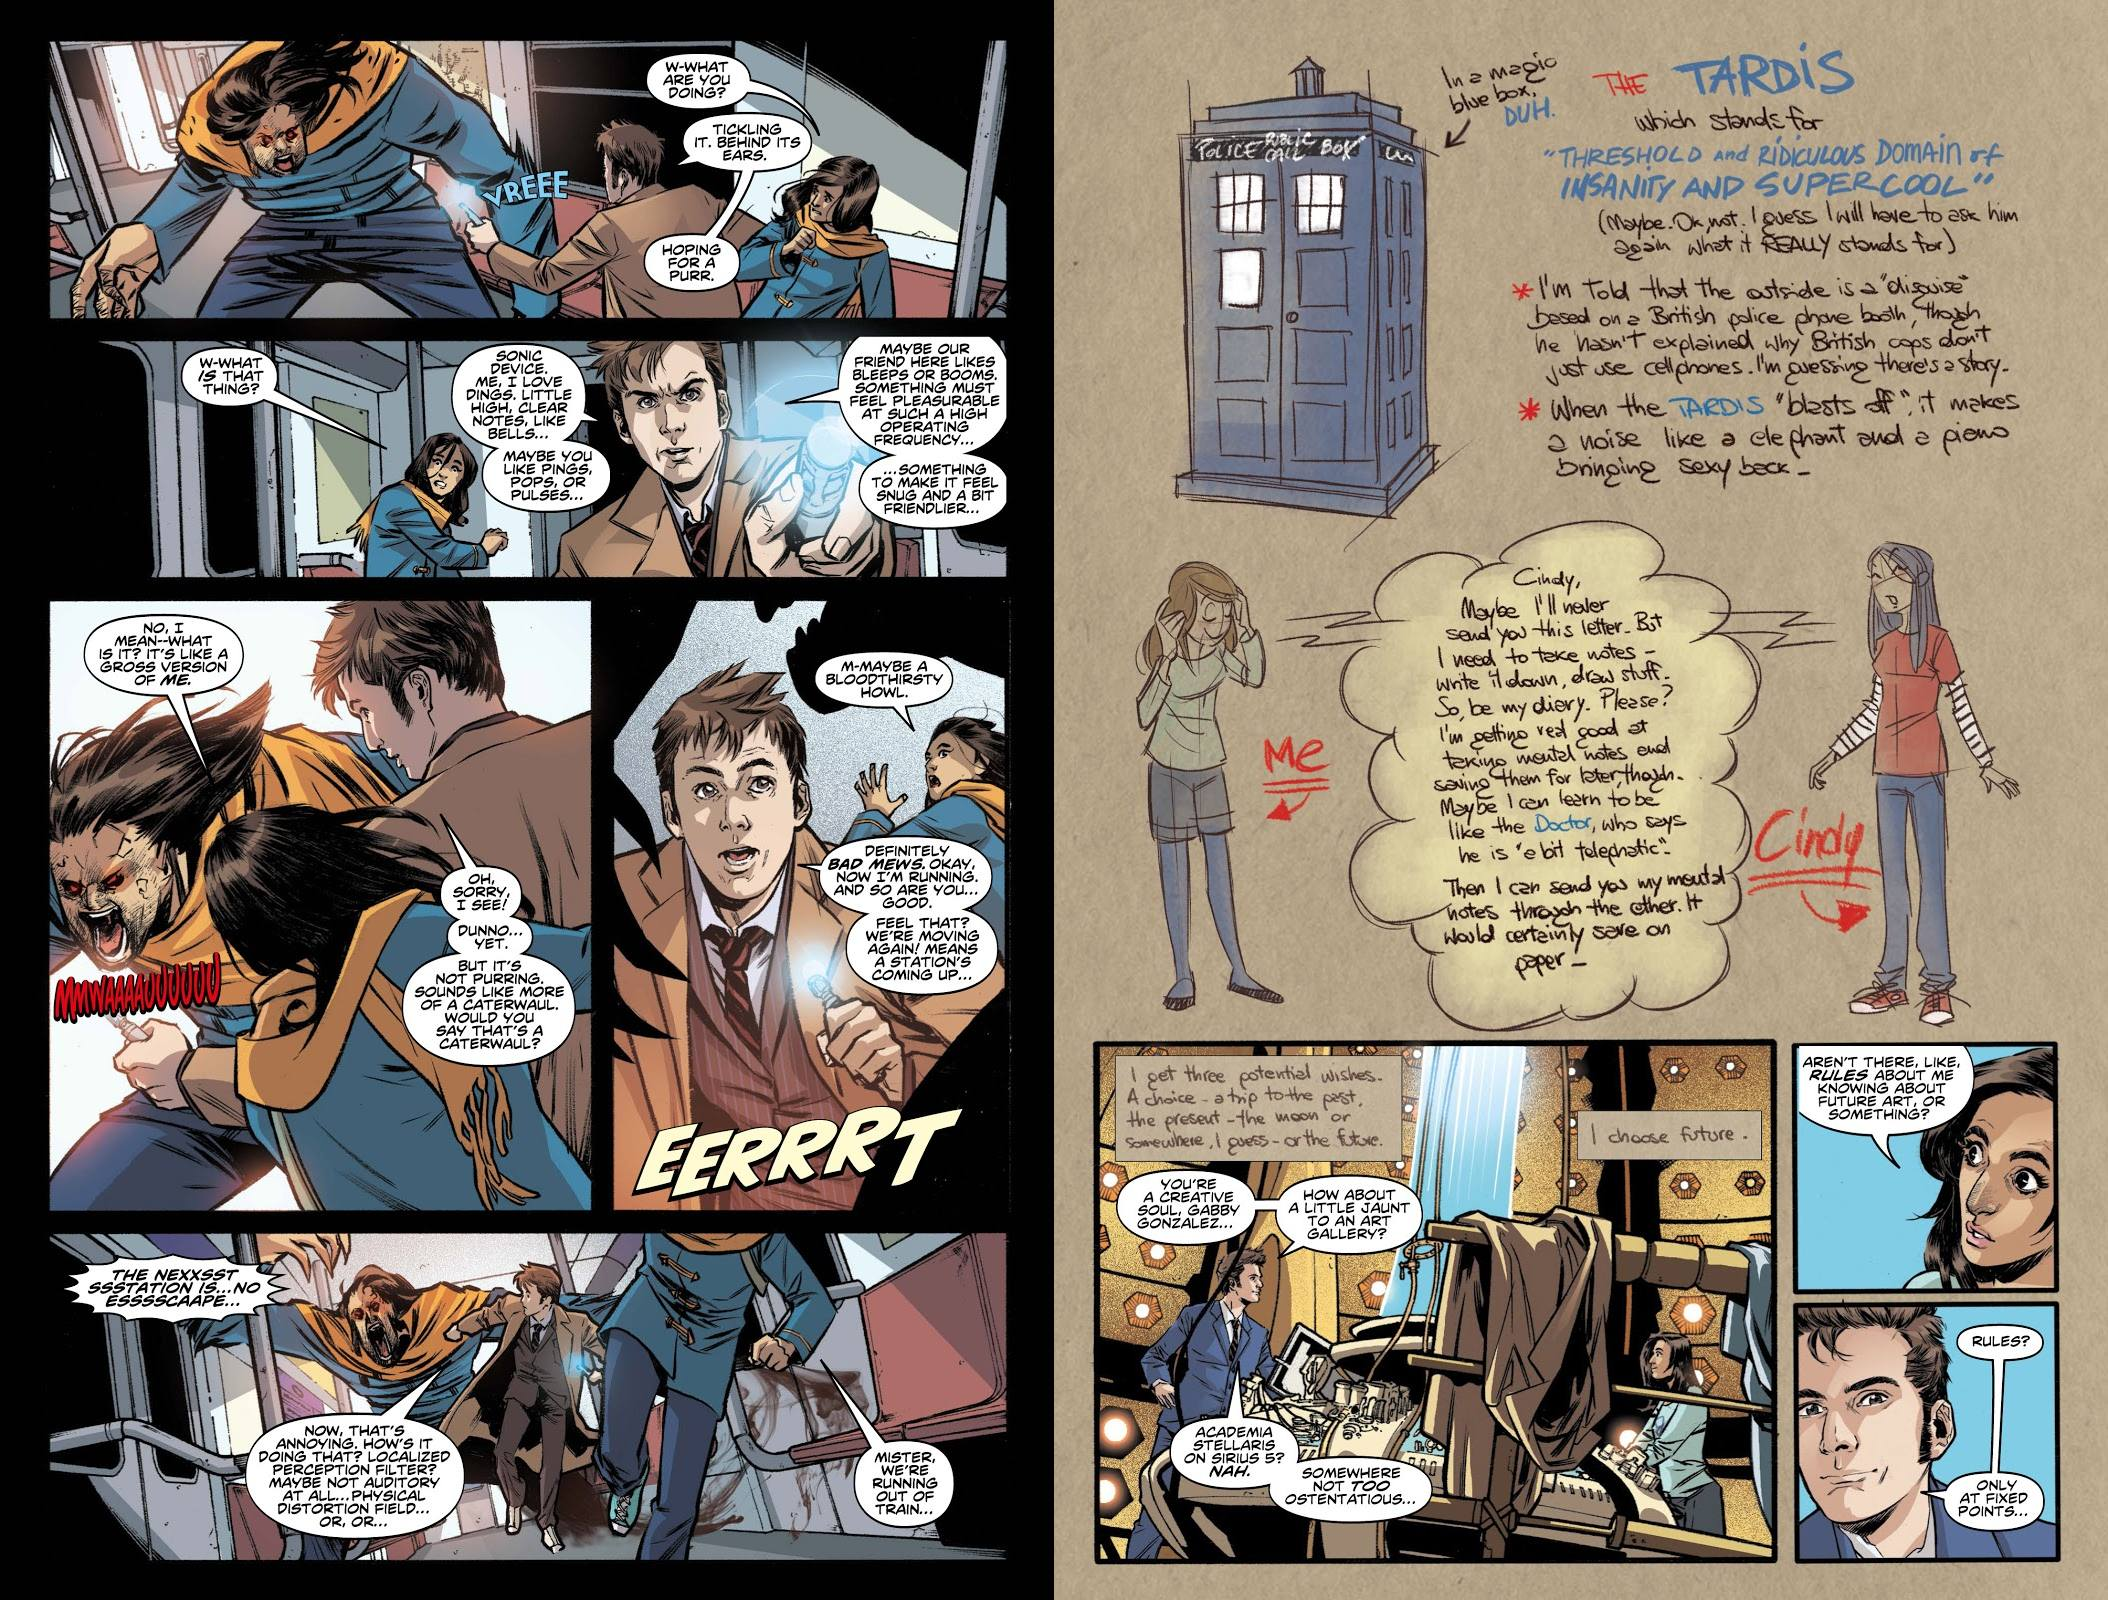 Doctor Who The Tenth Doctor Revolutions of Terror review